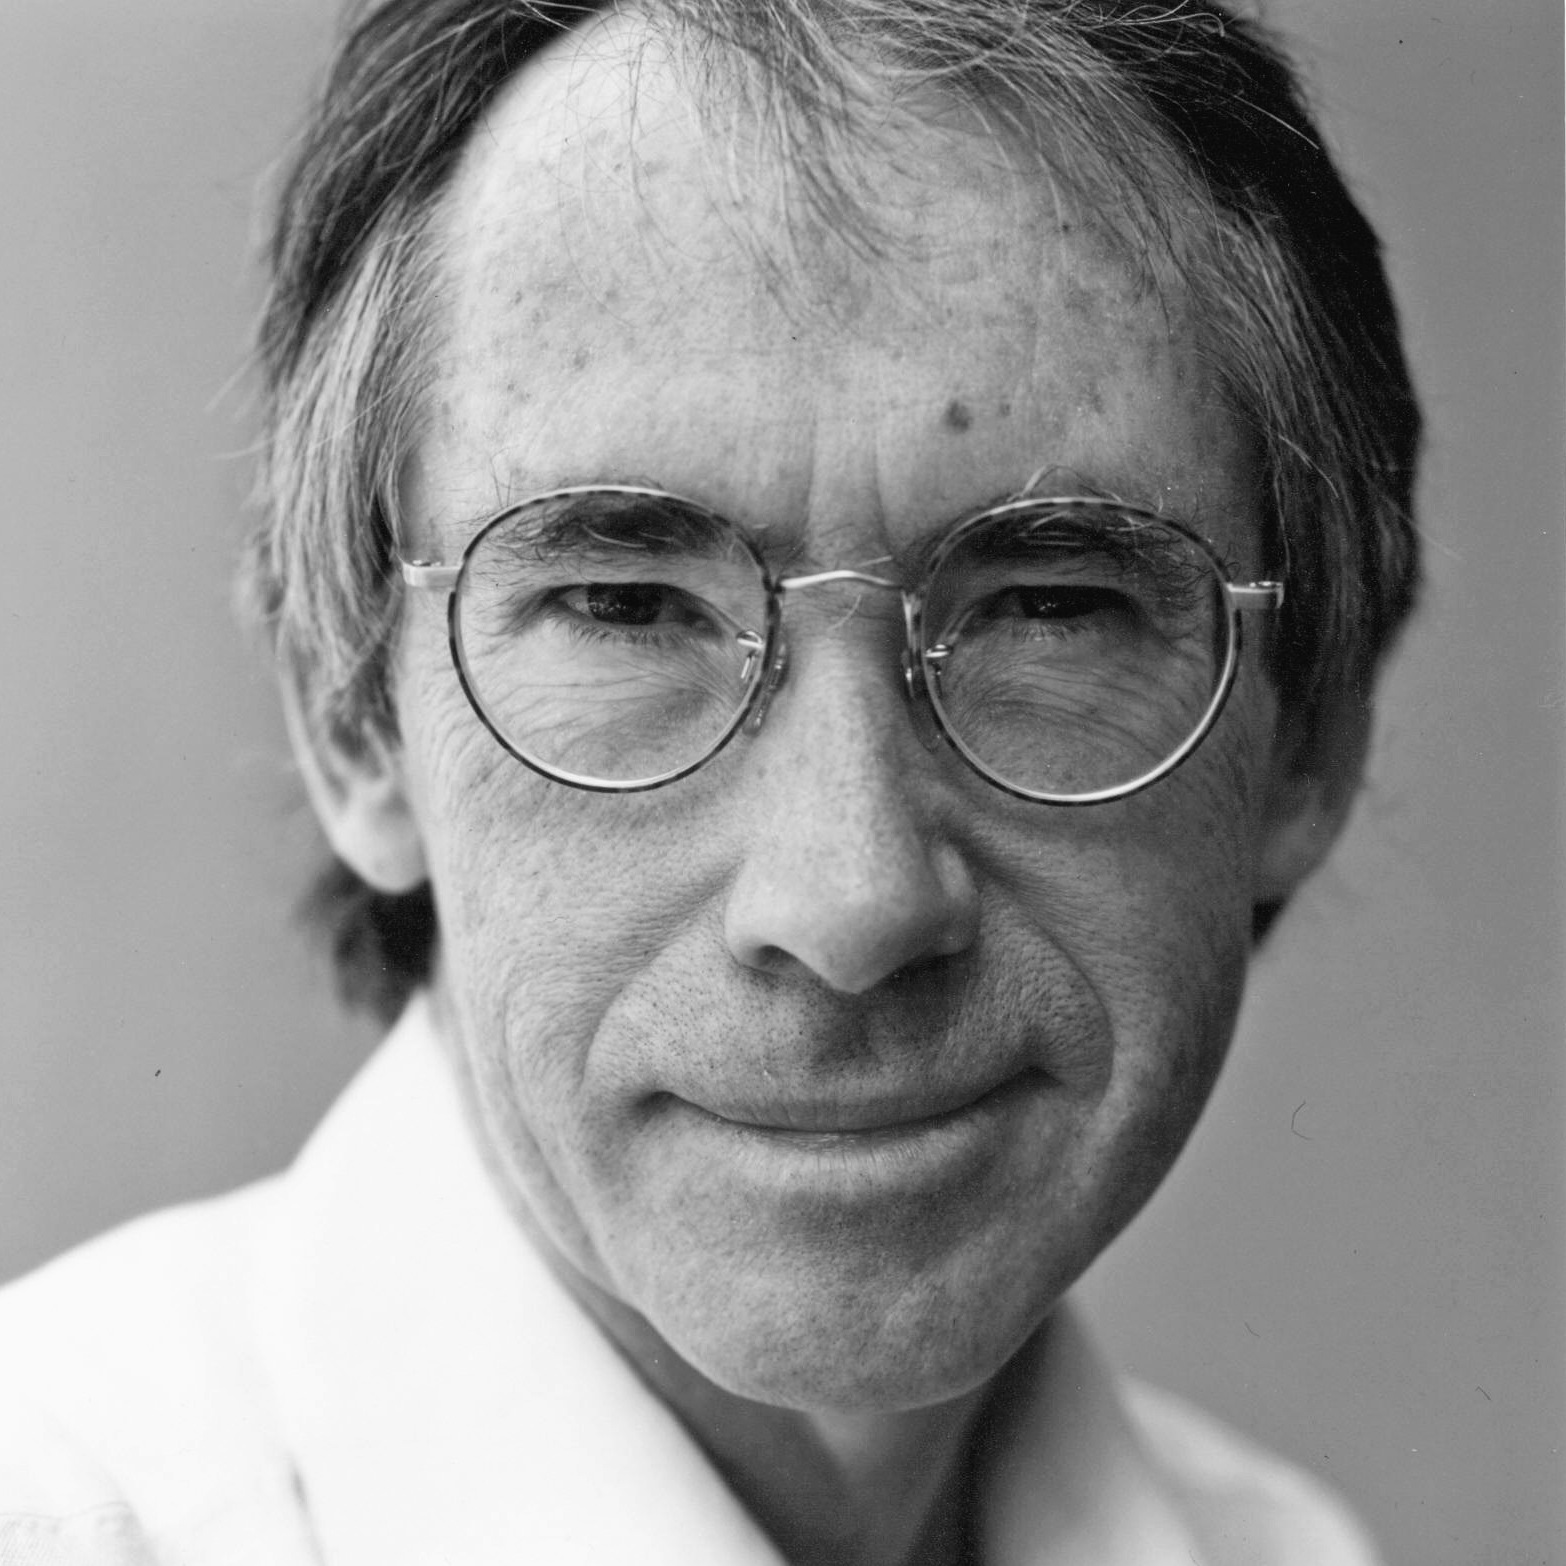 Ian McEwan's previous books include Atonement and  Saturday.